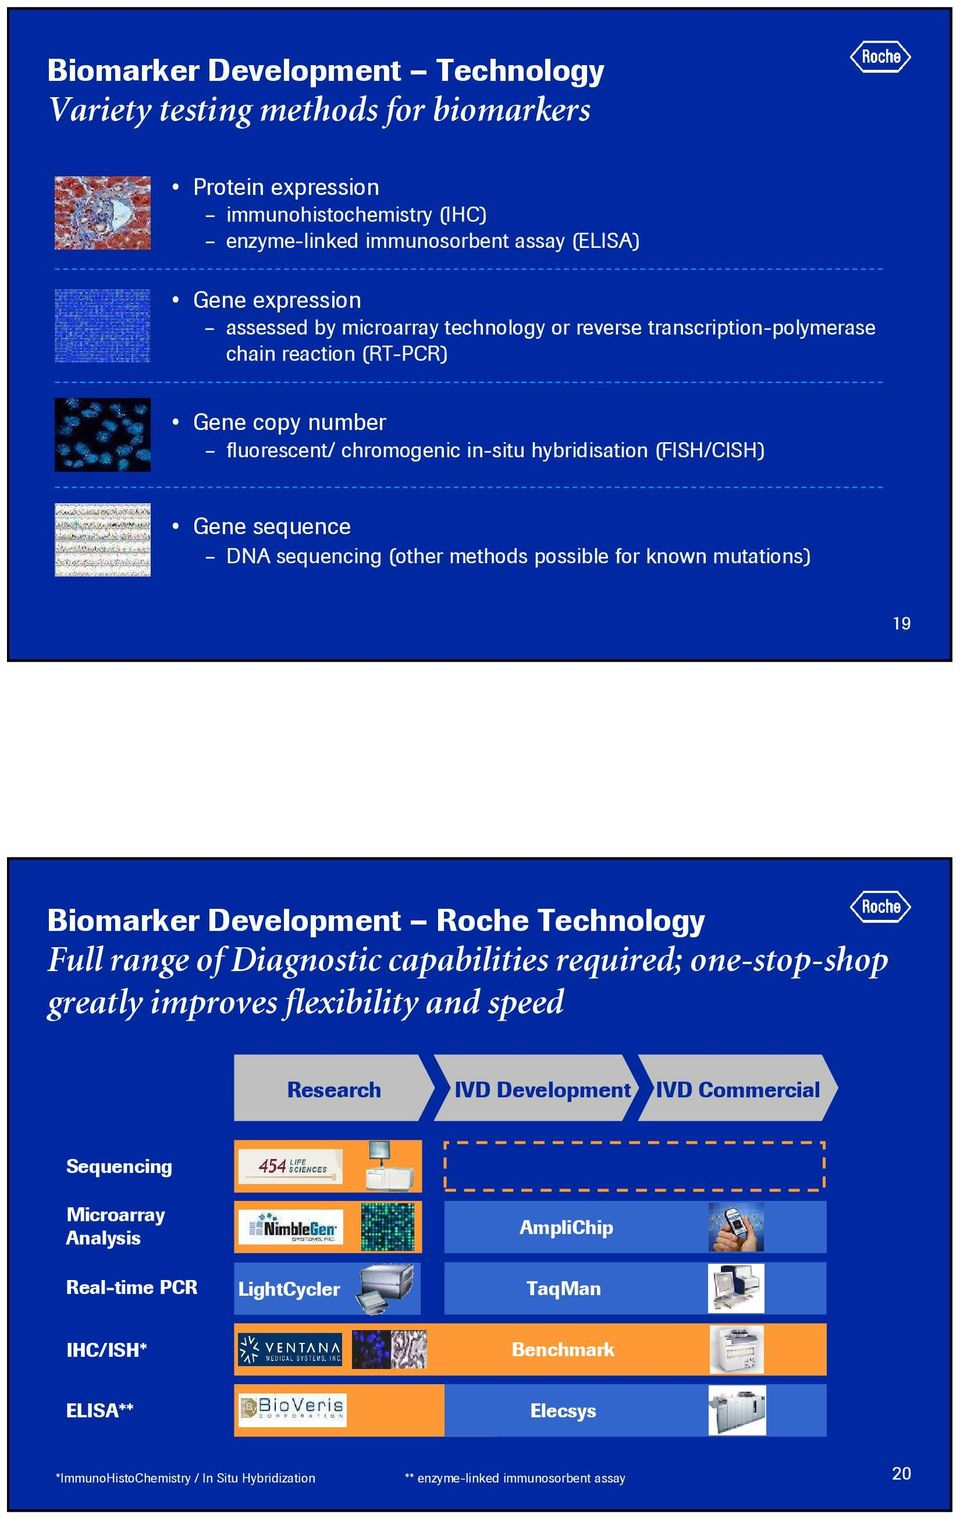 for known mutations) 19 Biomarker Development Roche echnology Full range of Diagnostic capabilities required; one-stop-shop greatly improves flexibility and speed Research IVD Development IVD